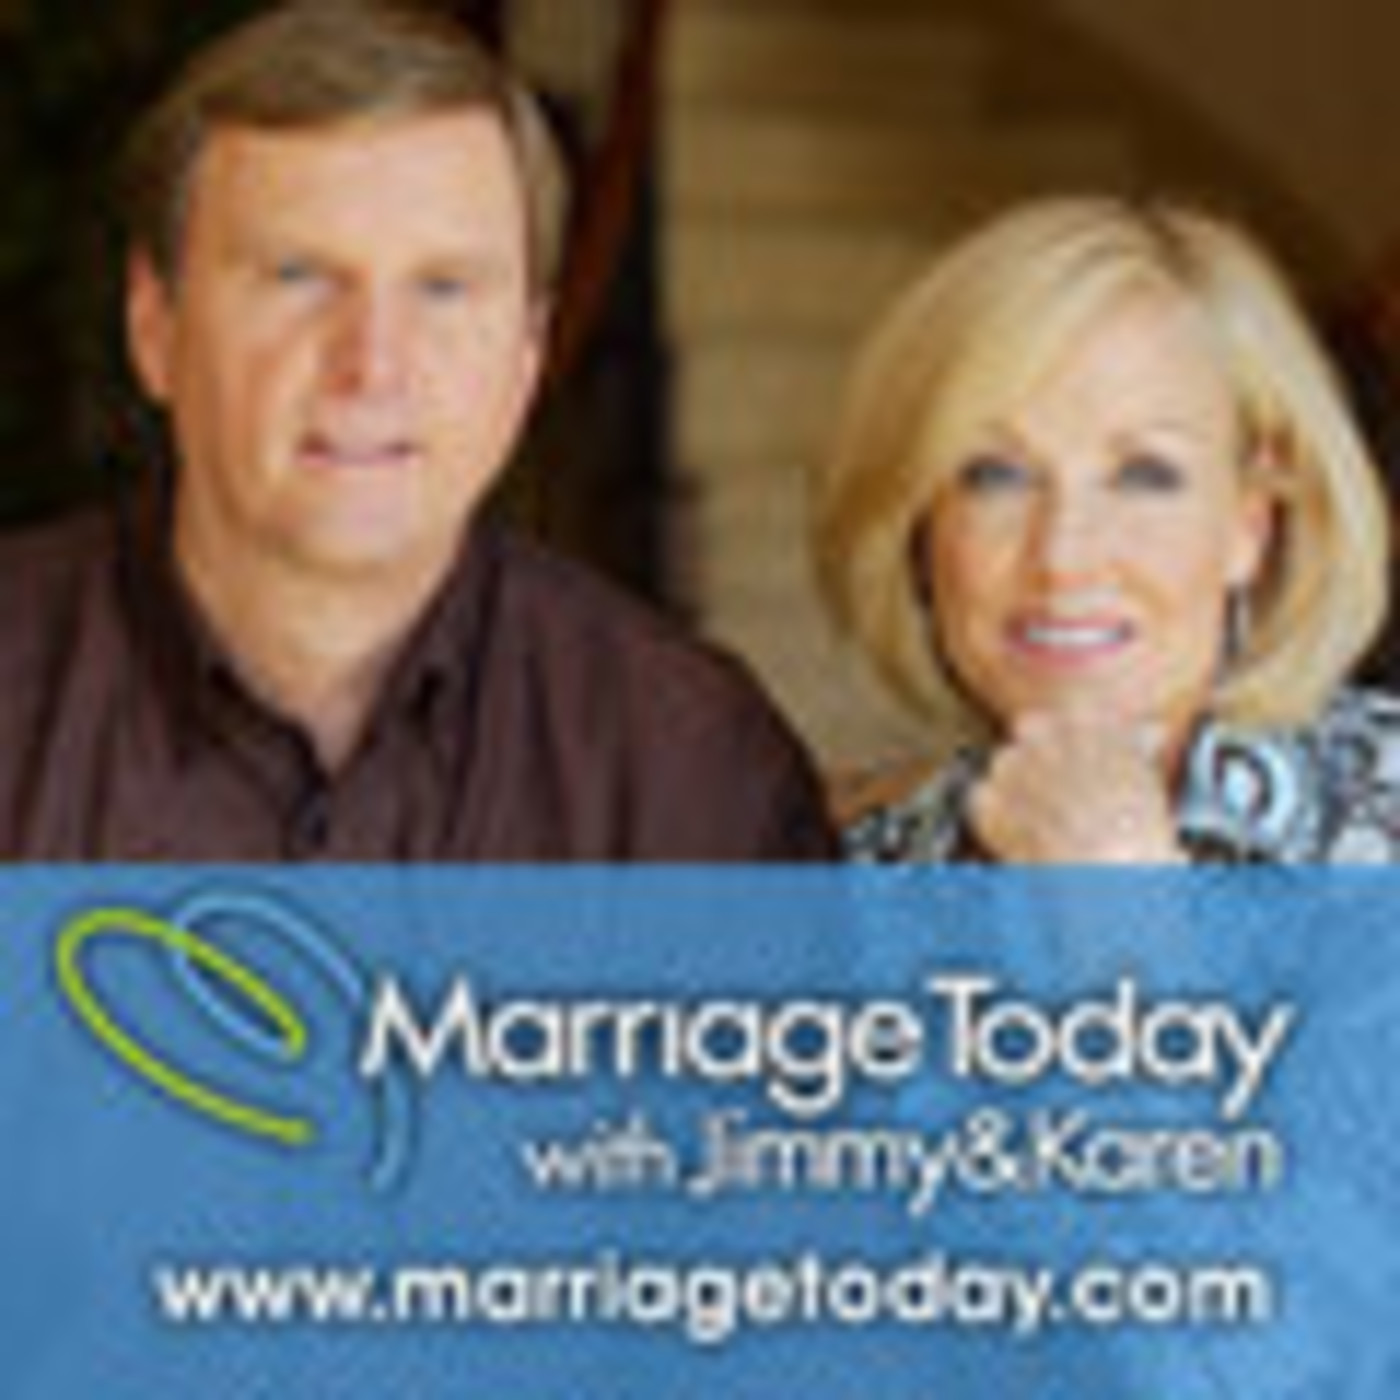 MarriageToday